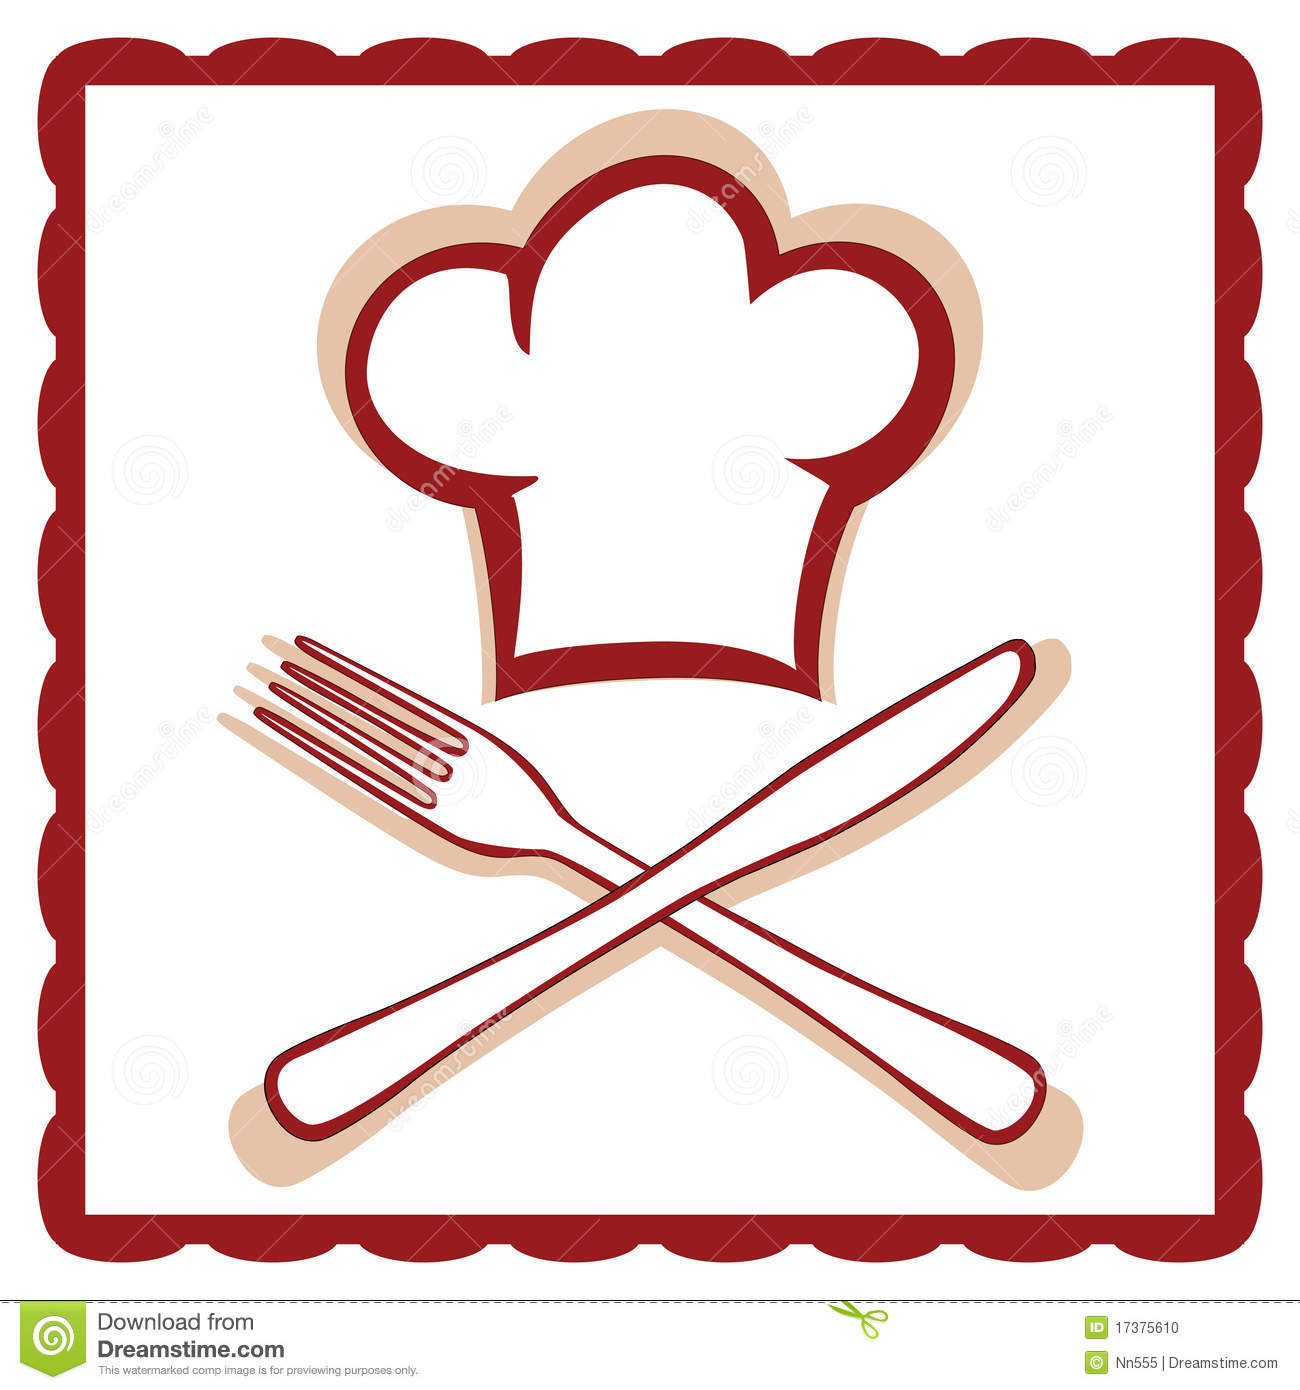 Chef Hat With Knife And Fork Sign Stock Photo - Image: 17375610